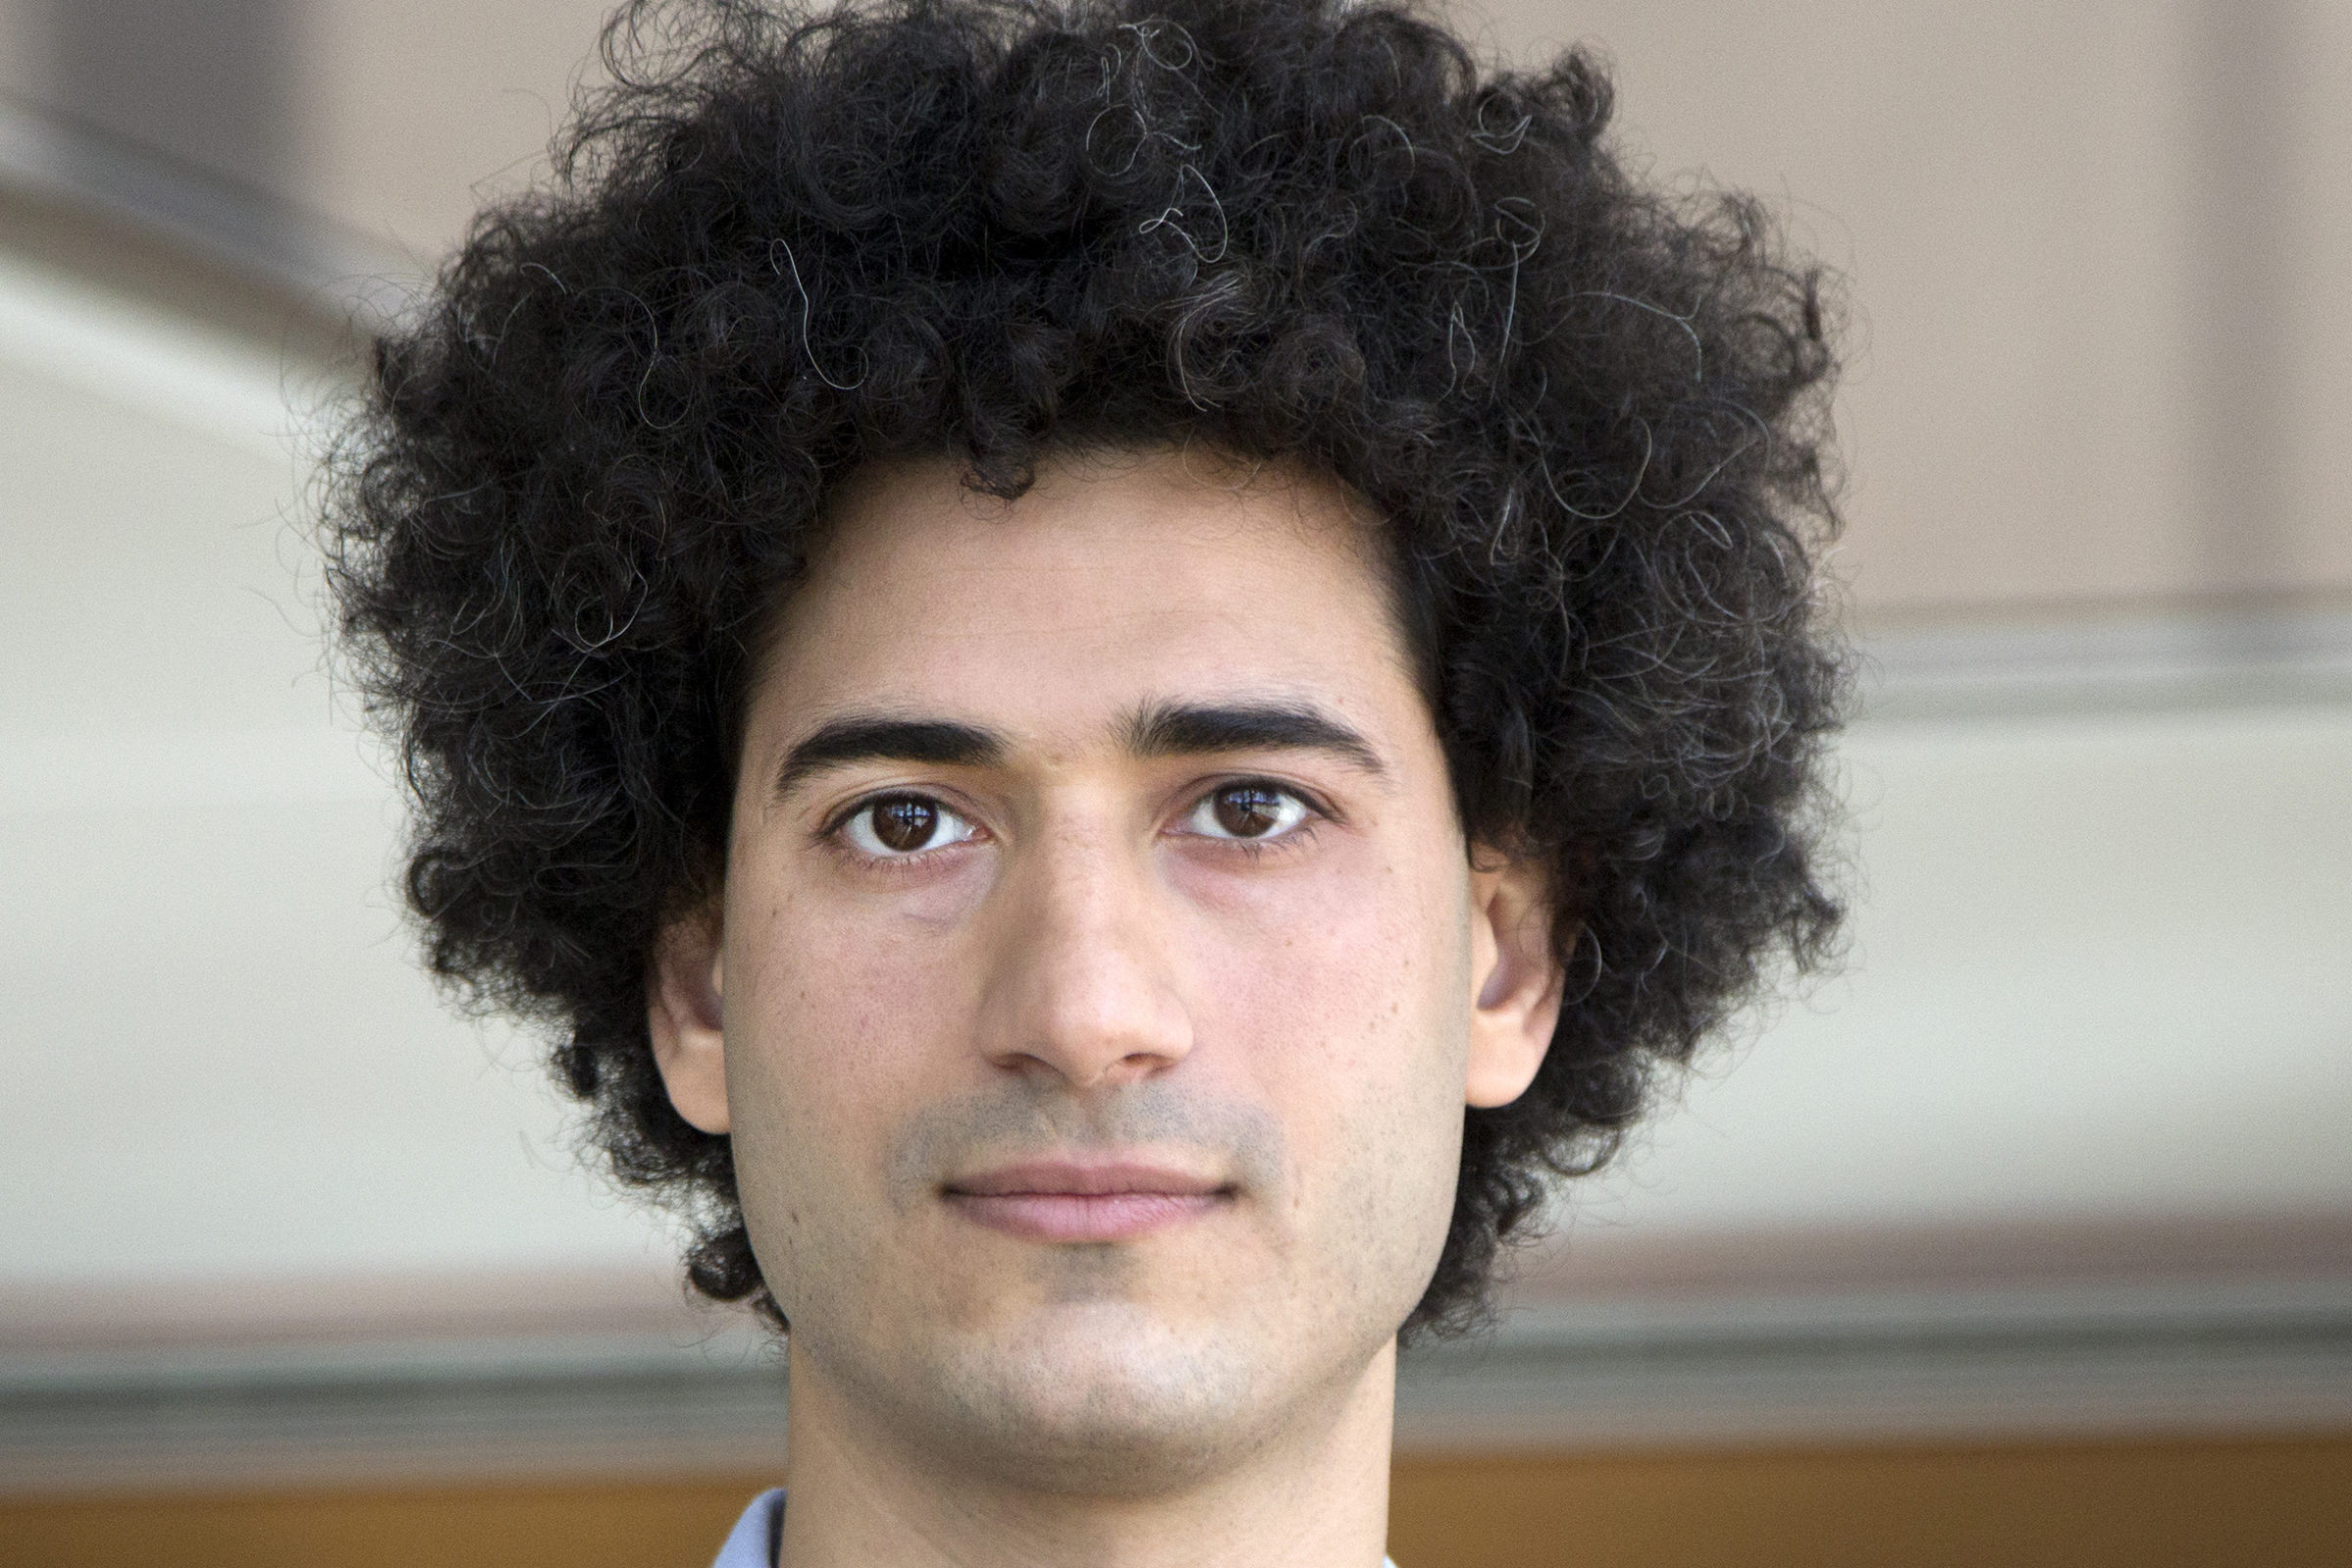 Maani Ghaffari Jadidi joins NAME faculty as Assistant Professor with joint Robotics appointment